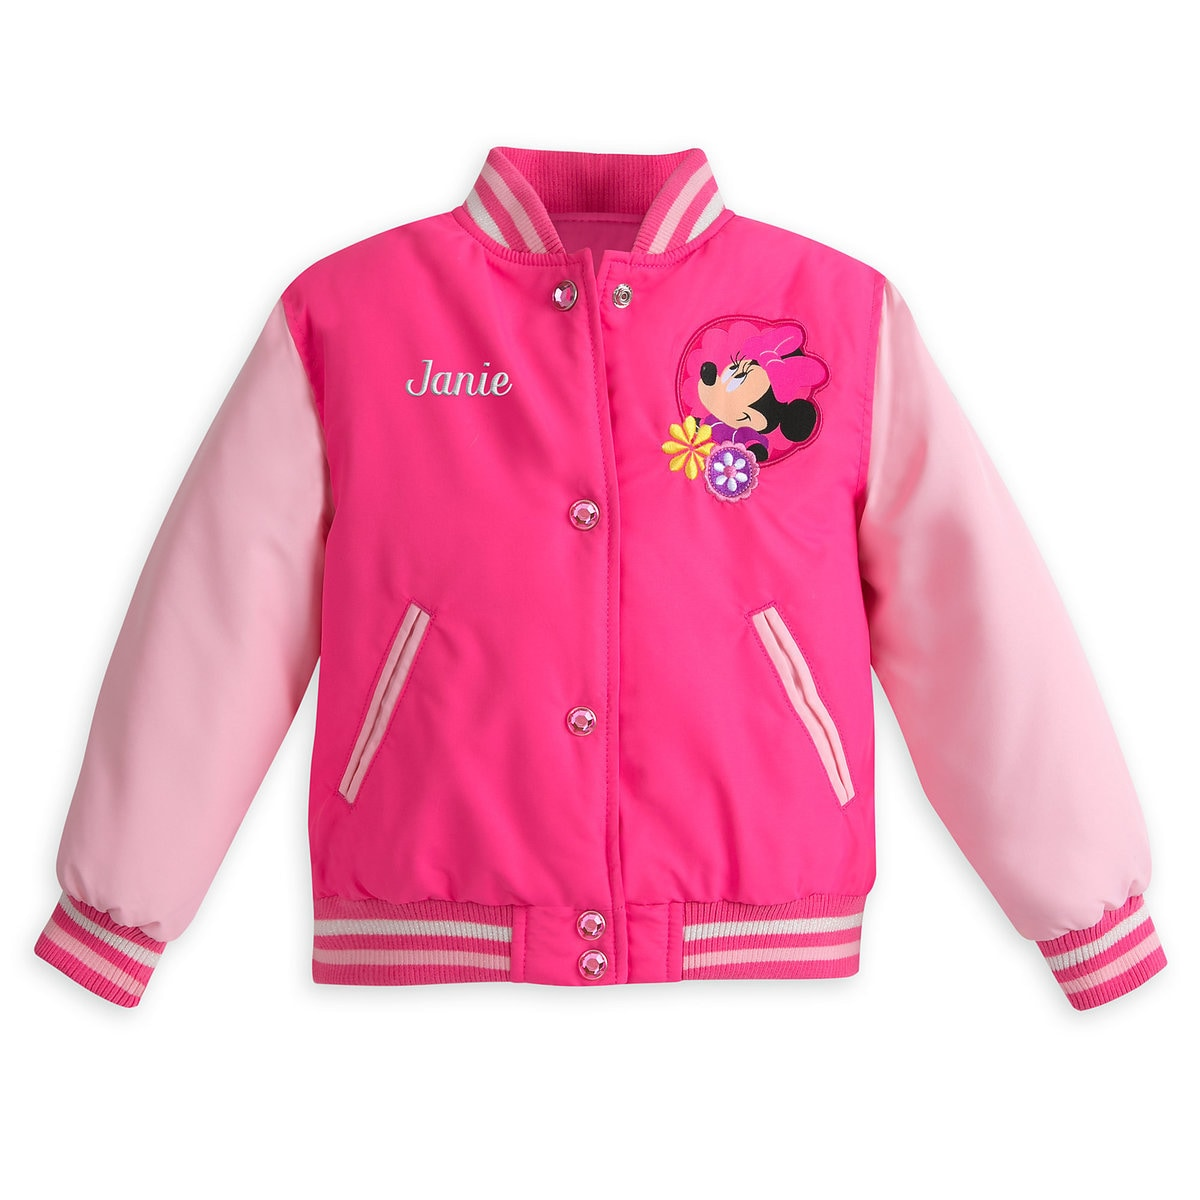 Minnie Mouse Varsity Jacket for Girls - Pink - Personalizable